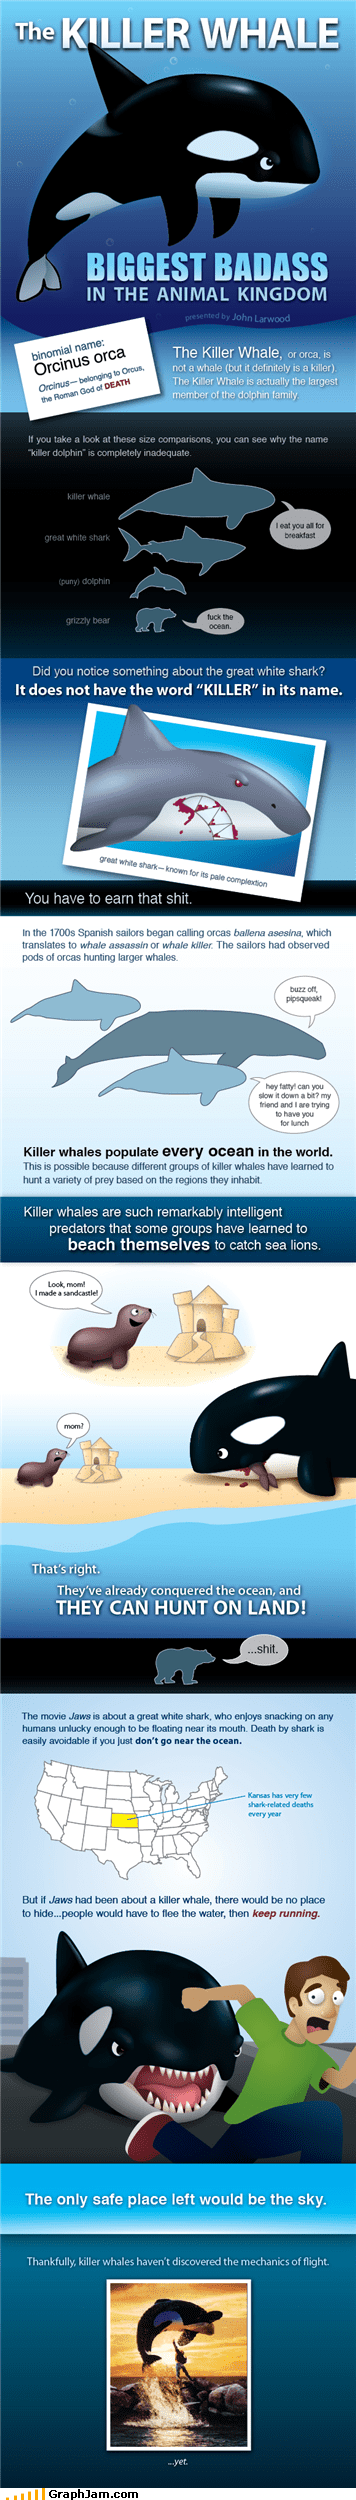 cracked,evil,infographic,killer whales,orcas